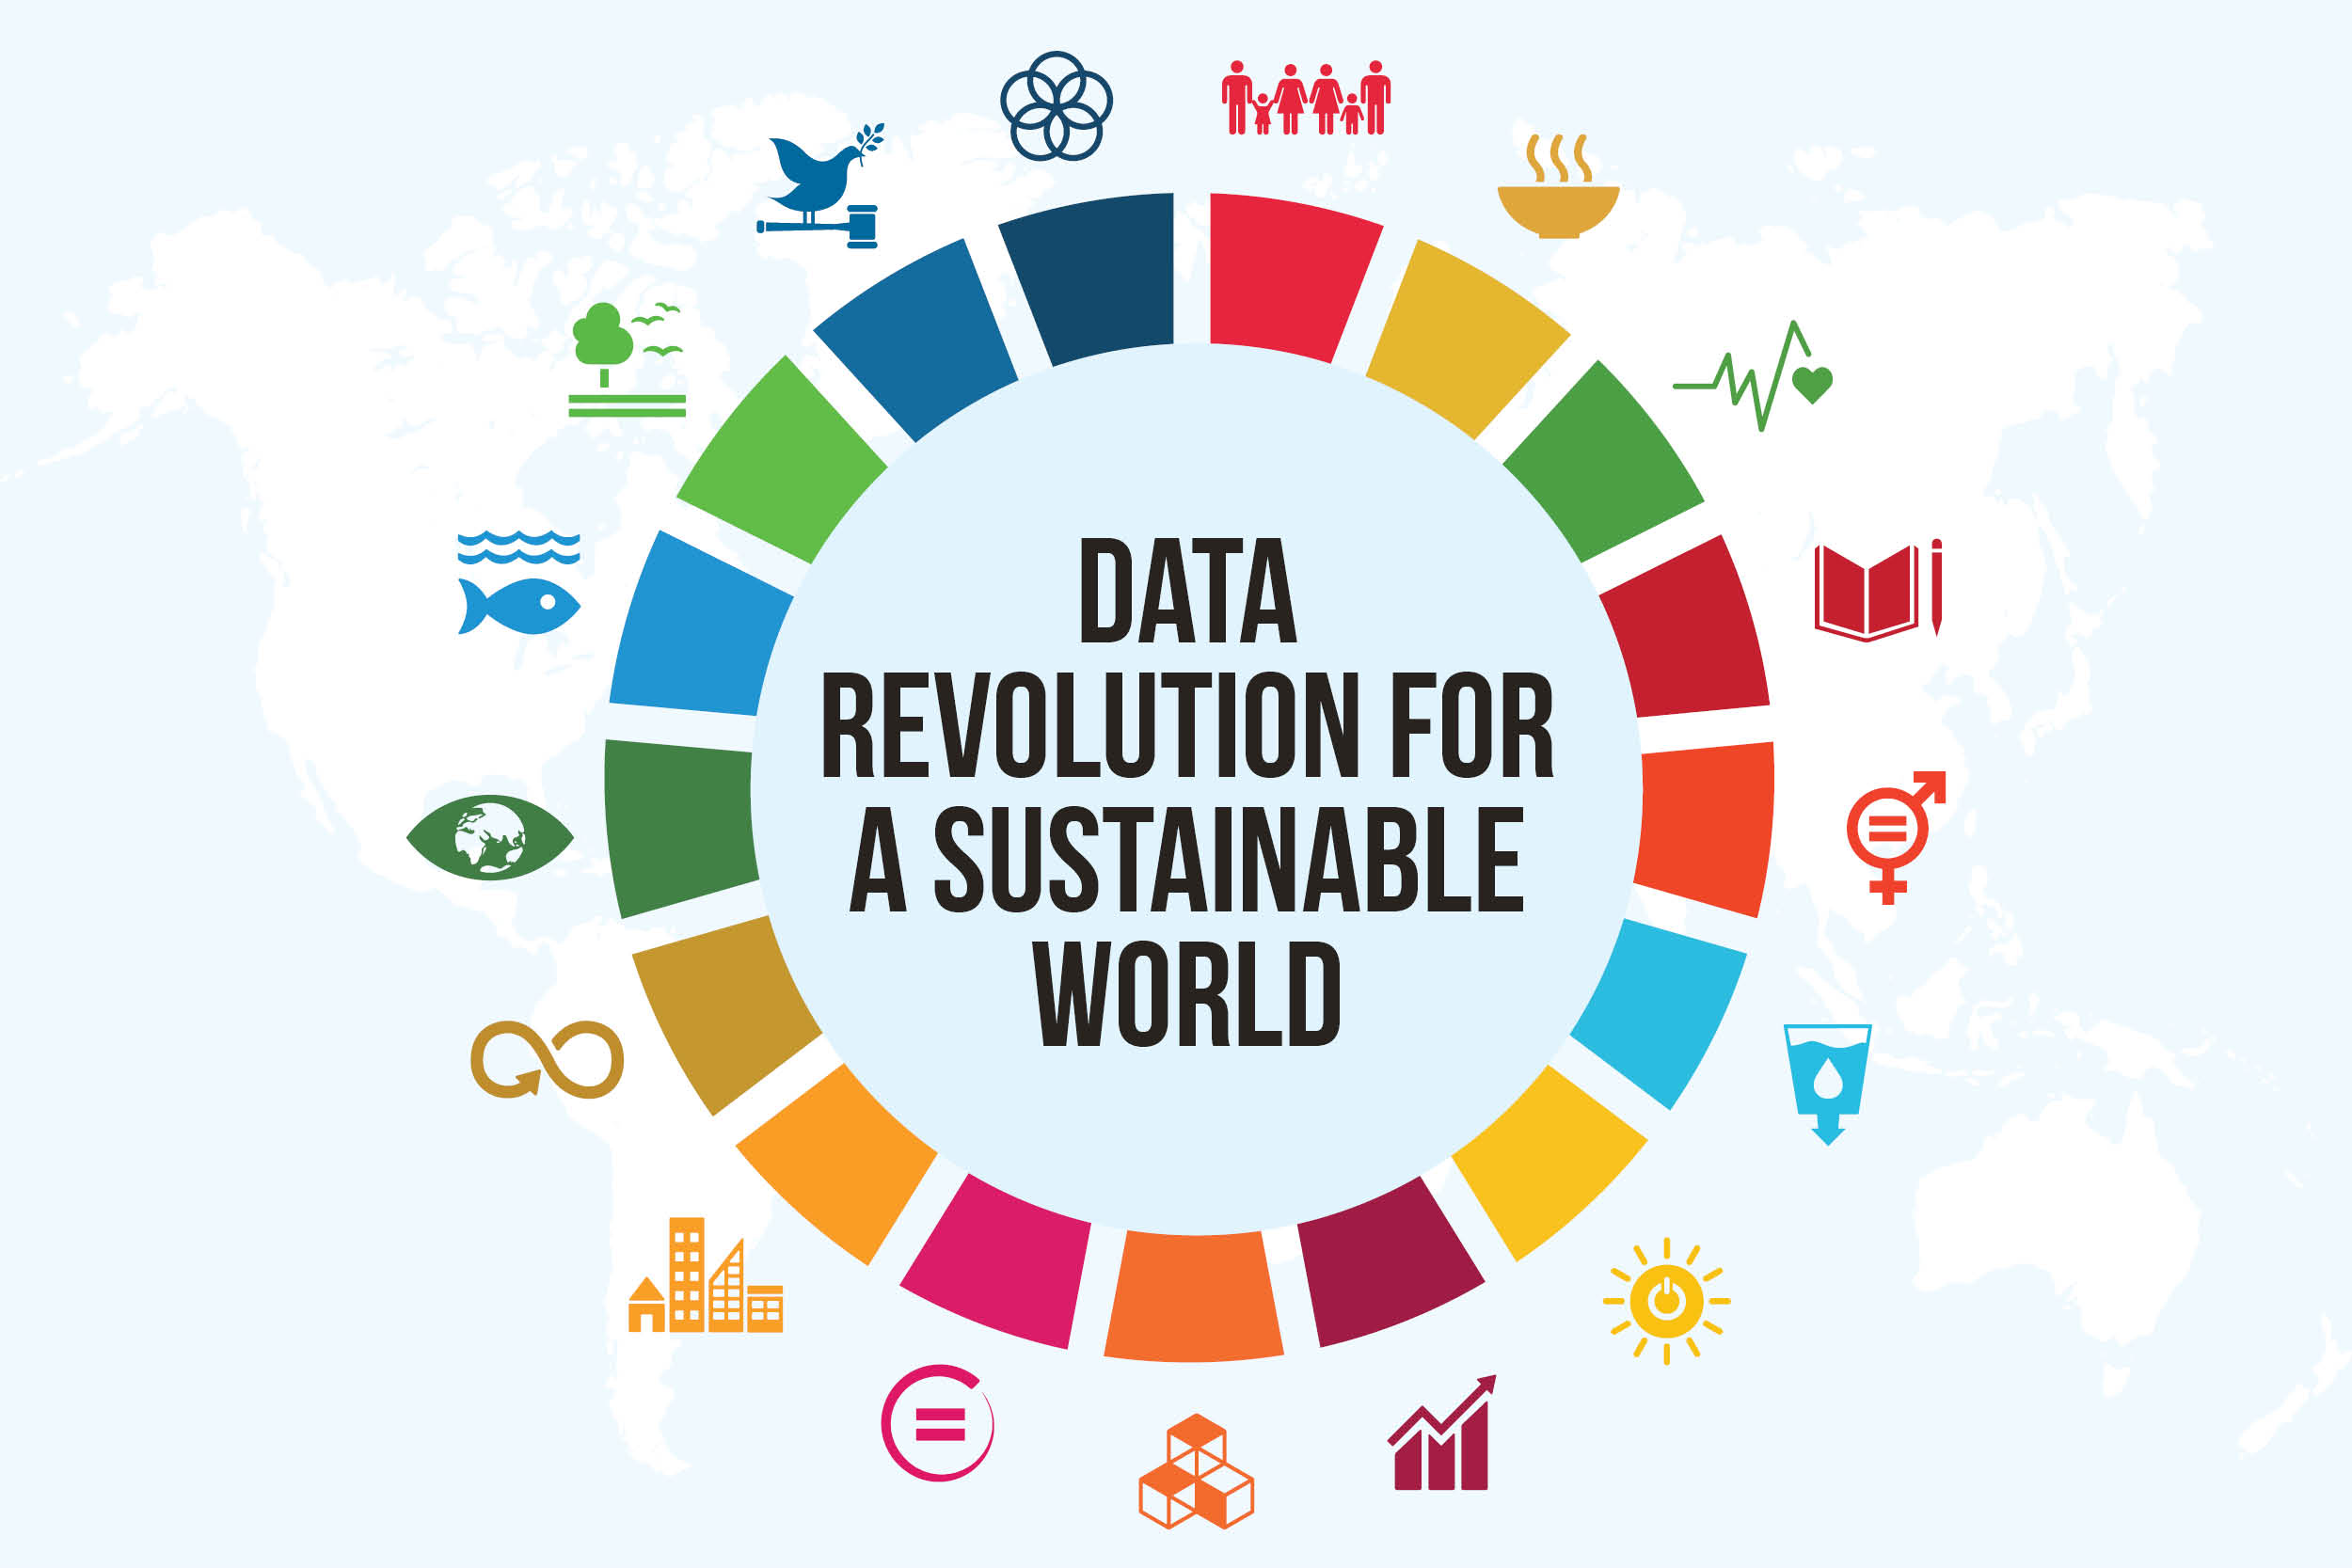 Data revolution for a sustainable world